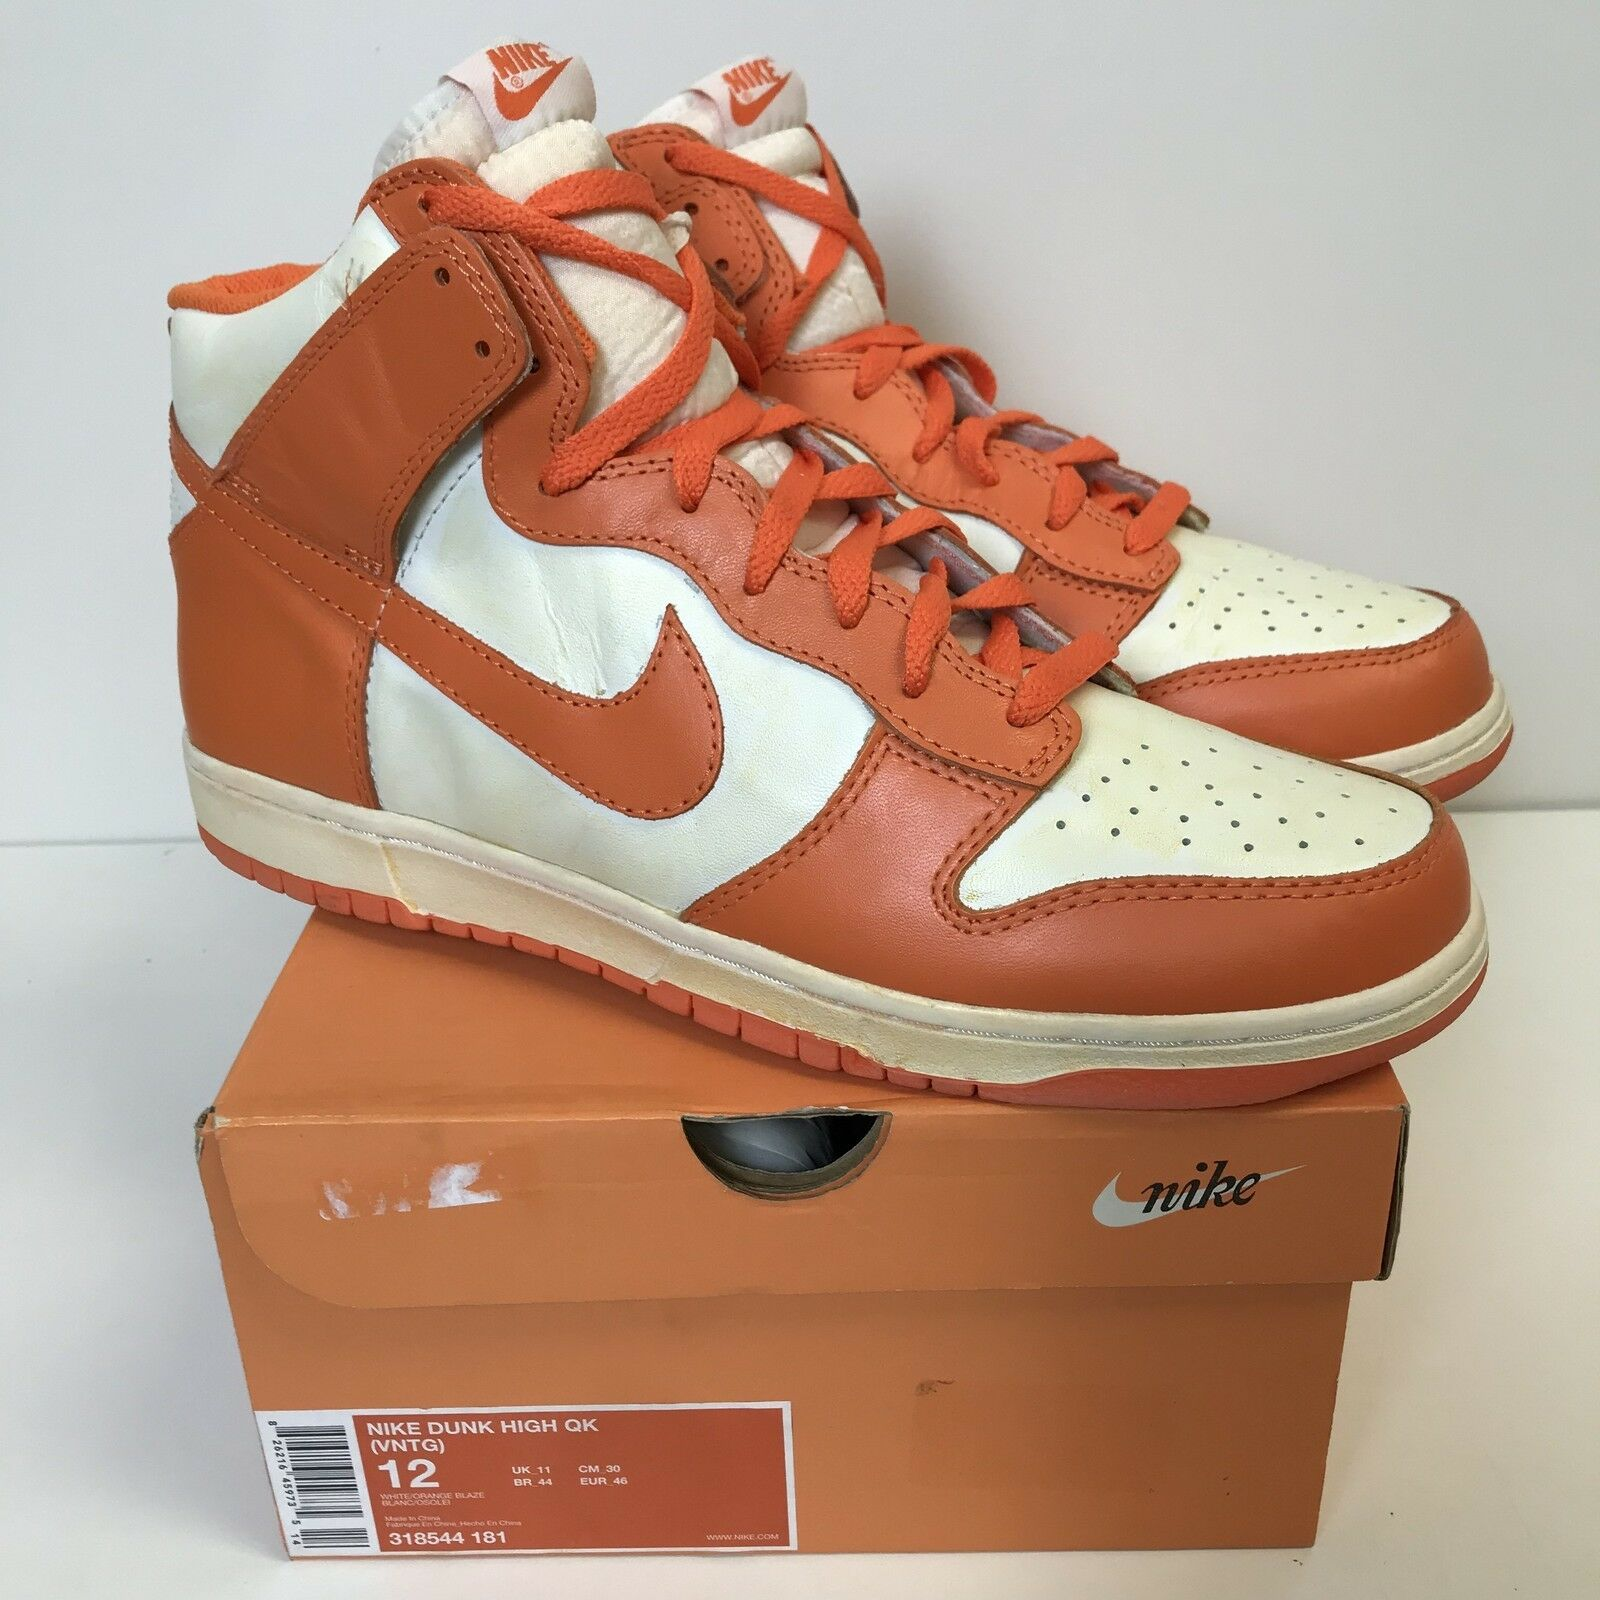 Nike 2007 Dunk High QK VNTG (Vintage) White orange Blaze sb New 318544-181 US 12